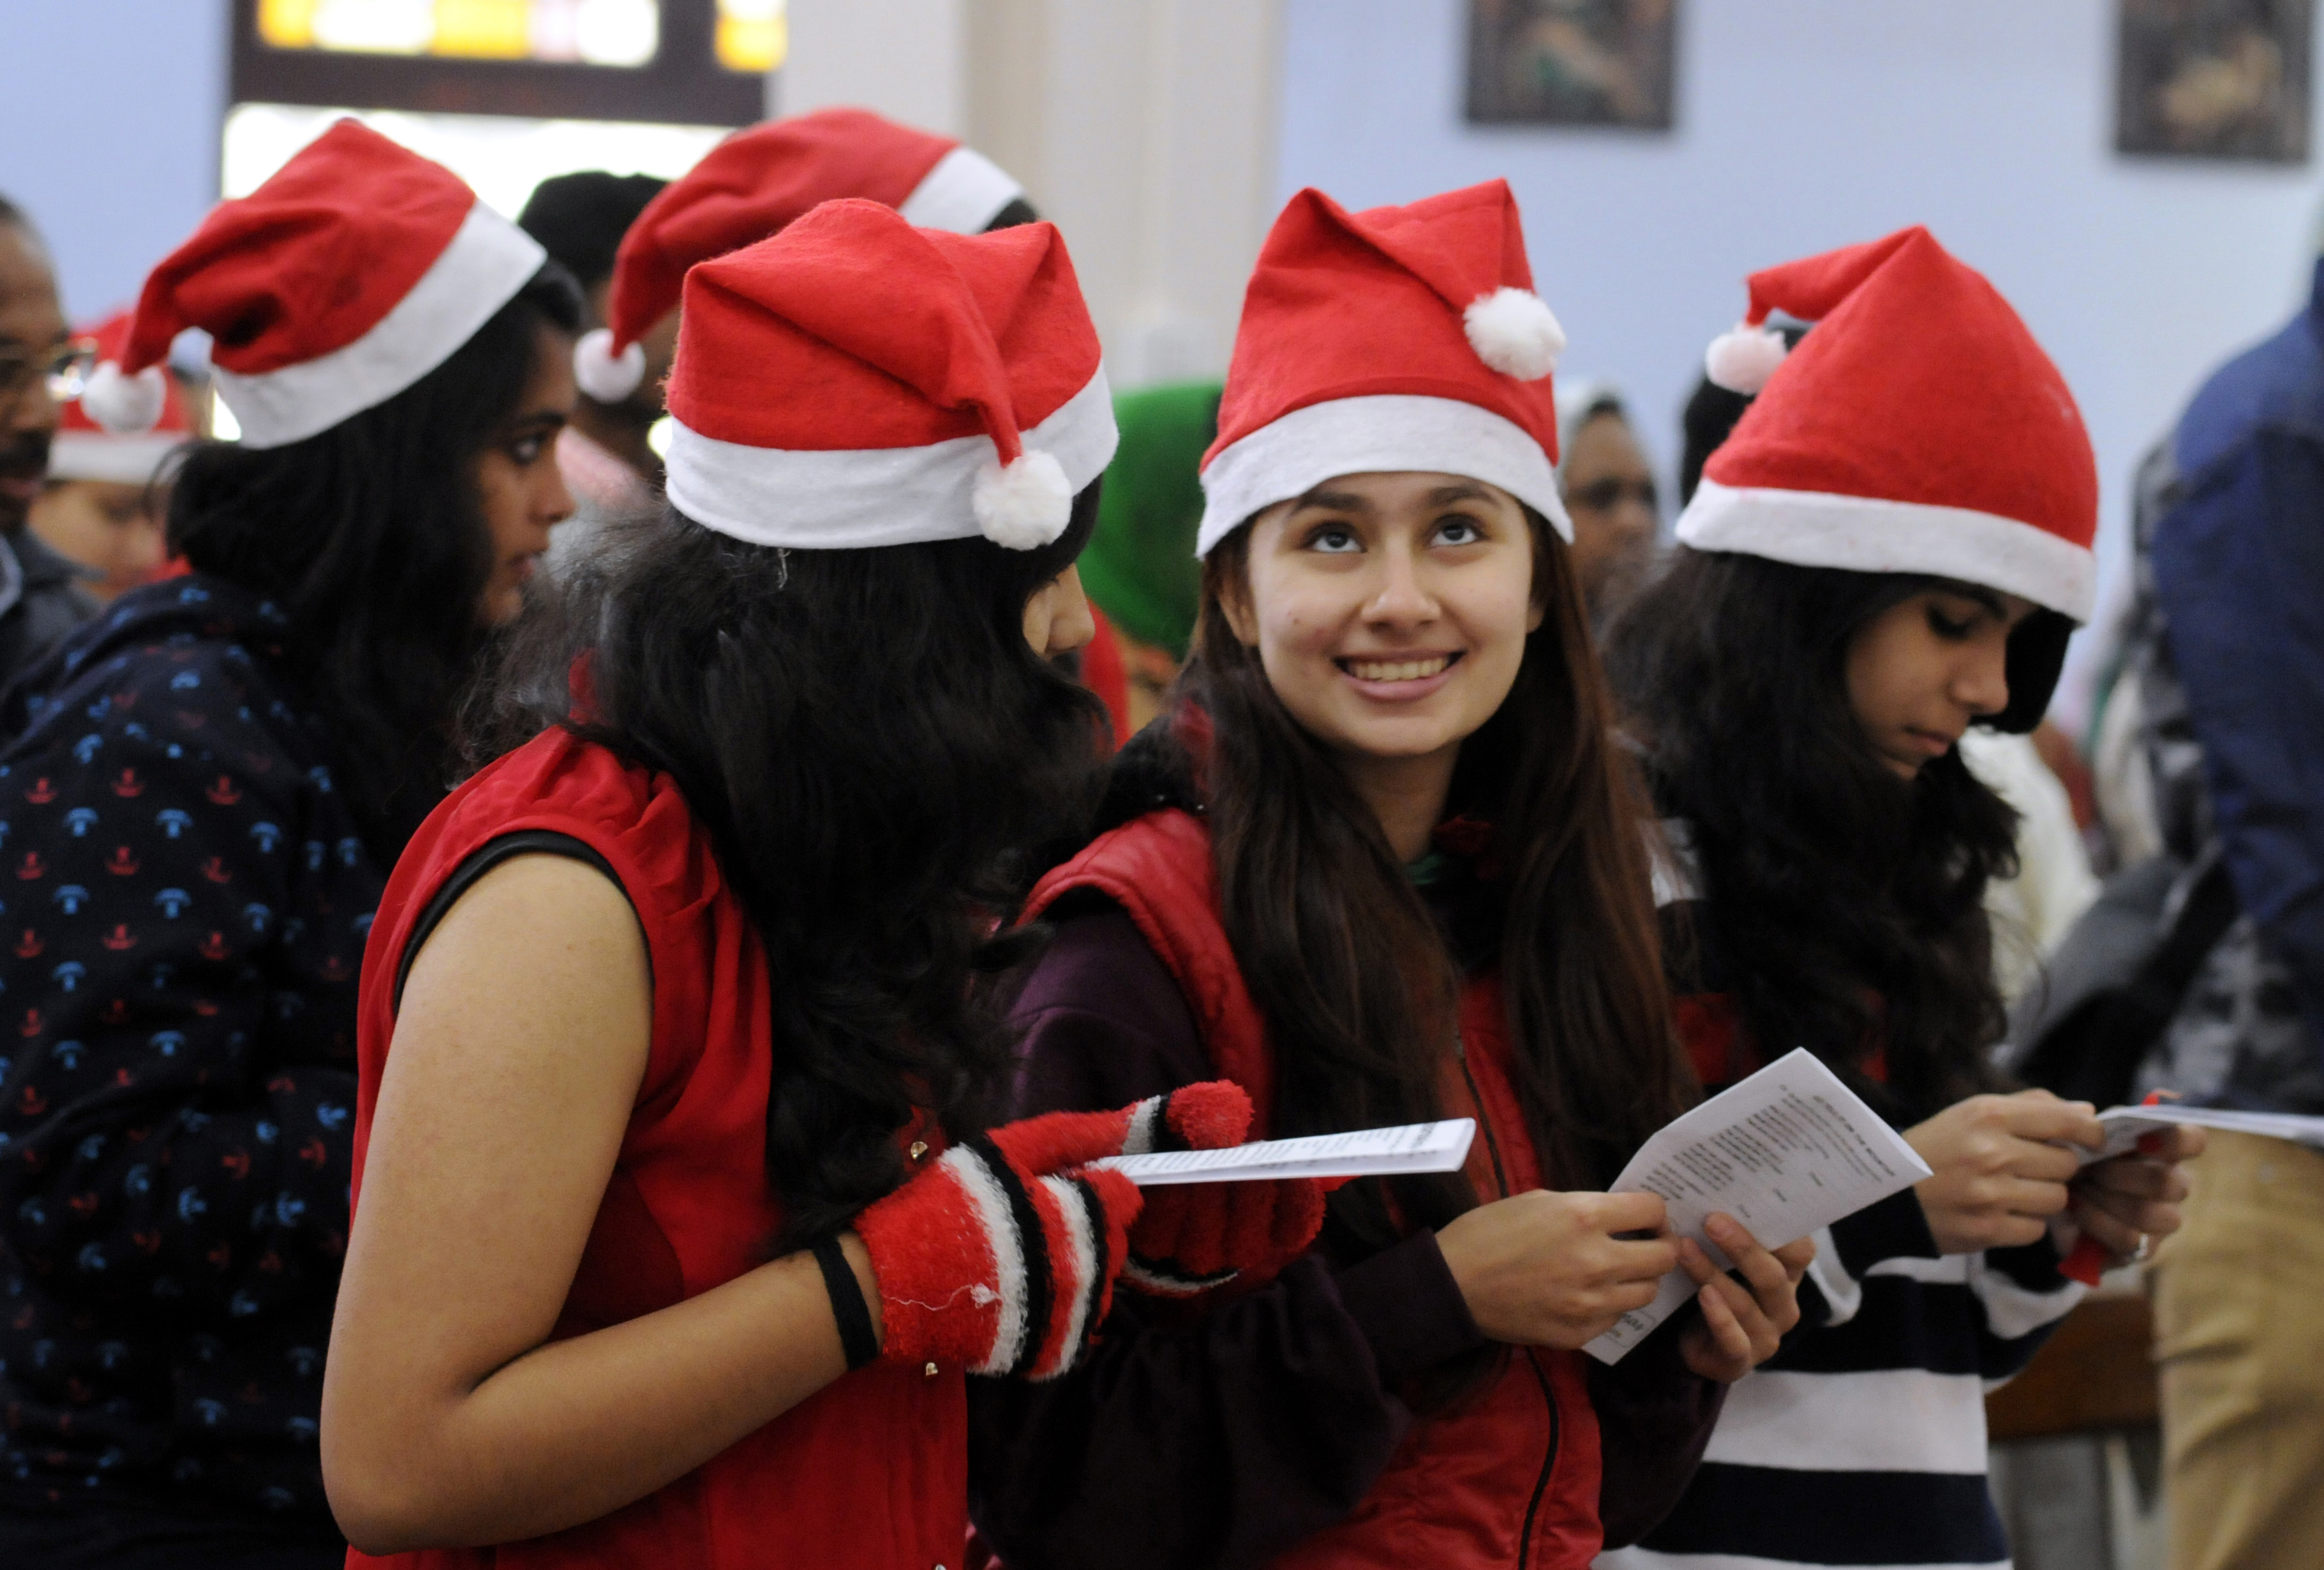 christmas india - Do They Celebrate Christmas In India